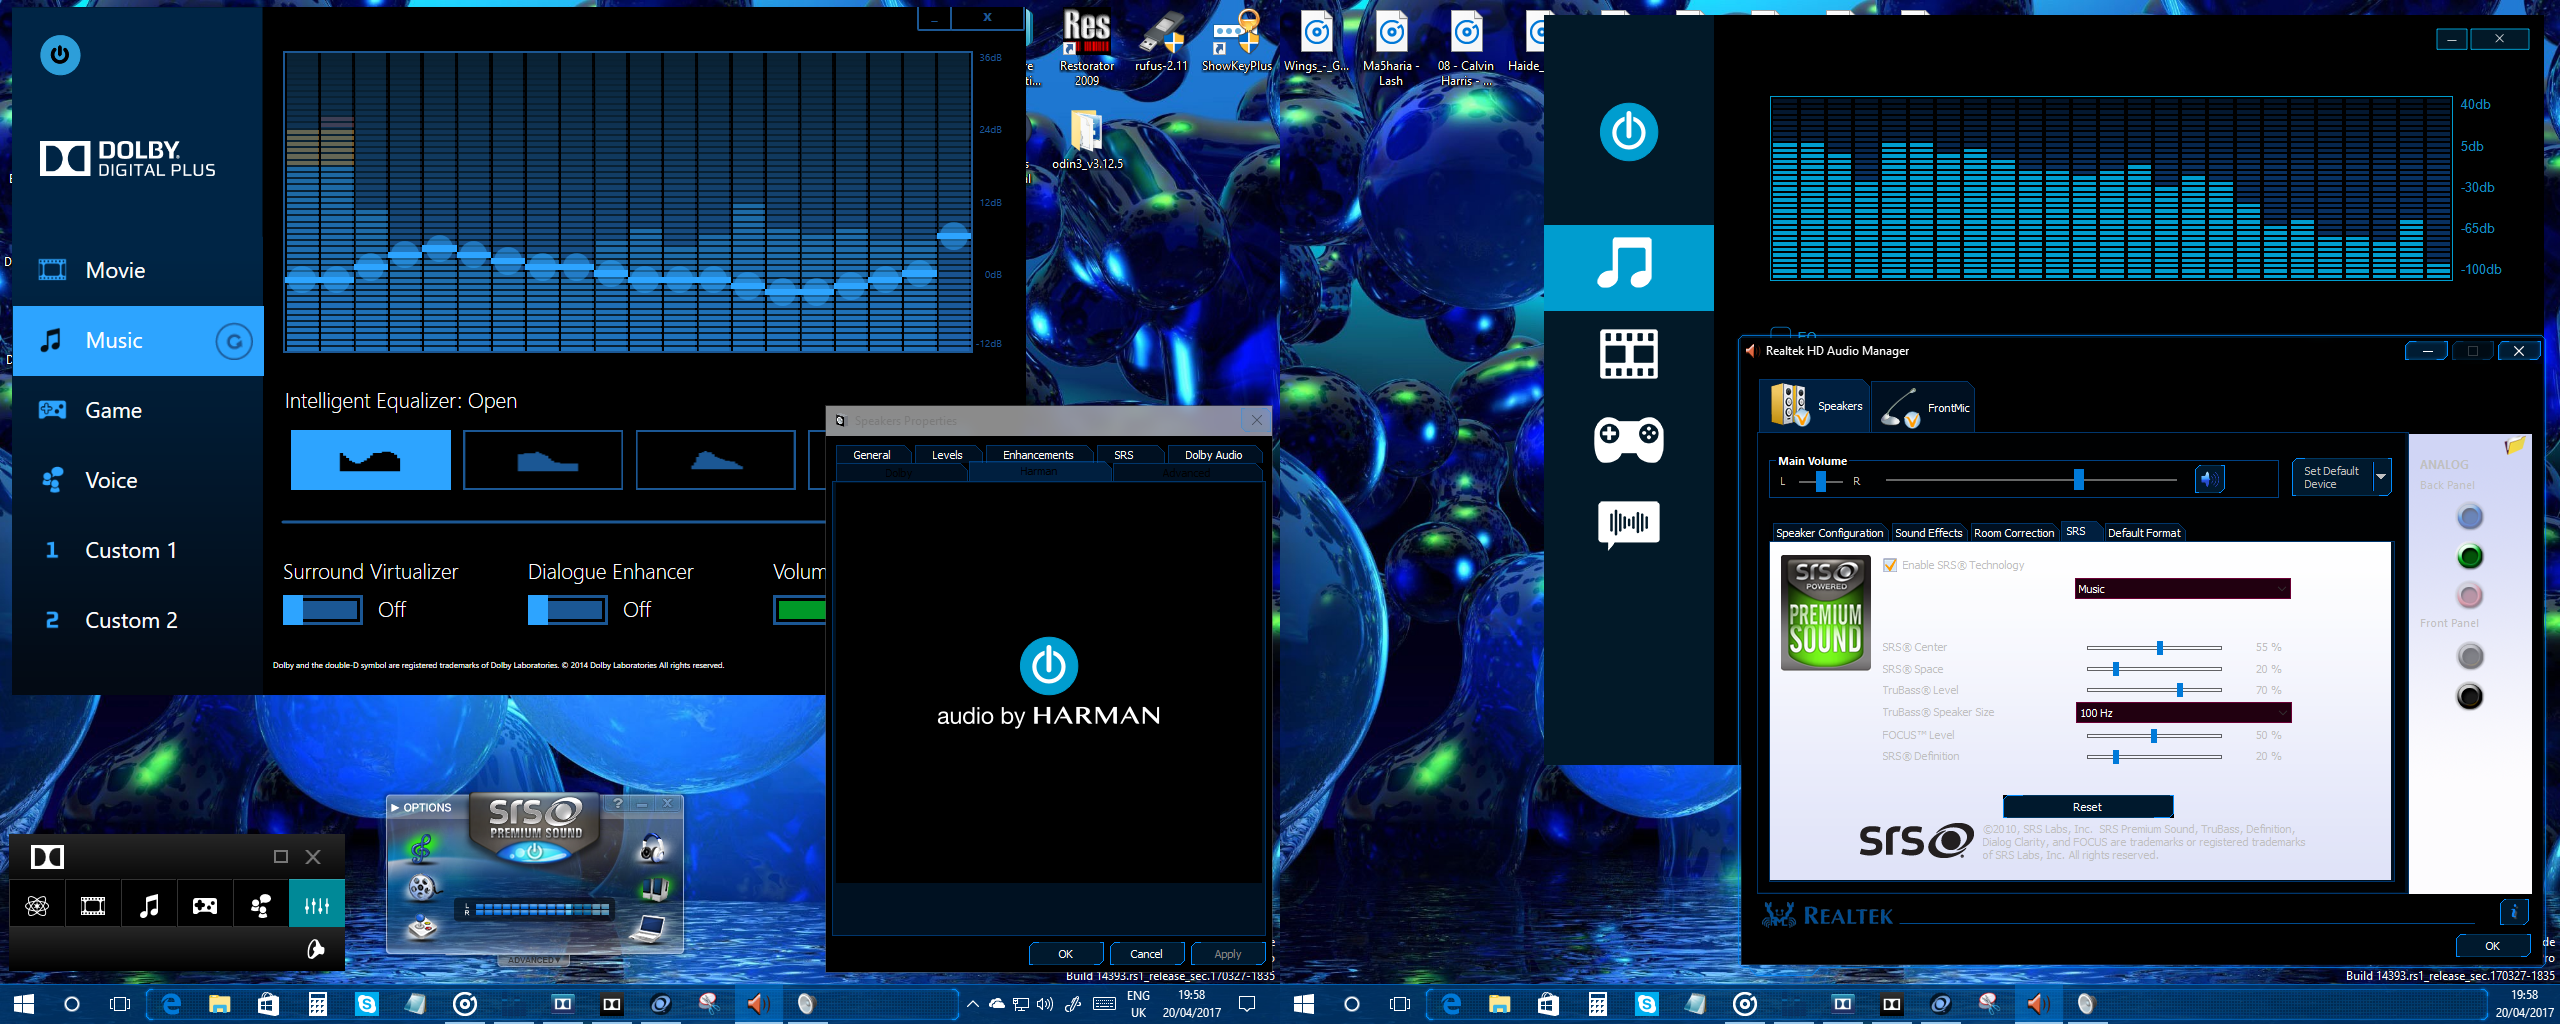 Realtek hd audio manager windows 10 64 bit hp | Realtek HD